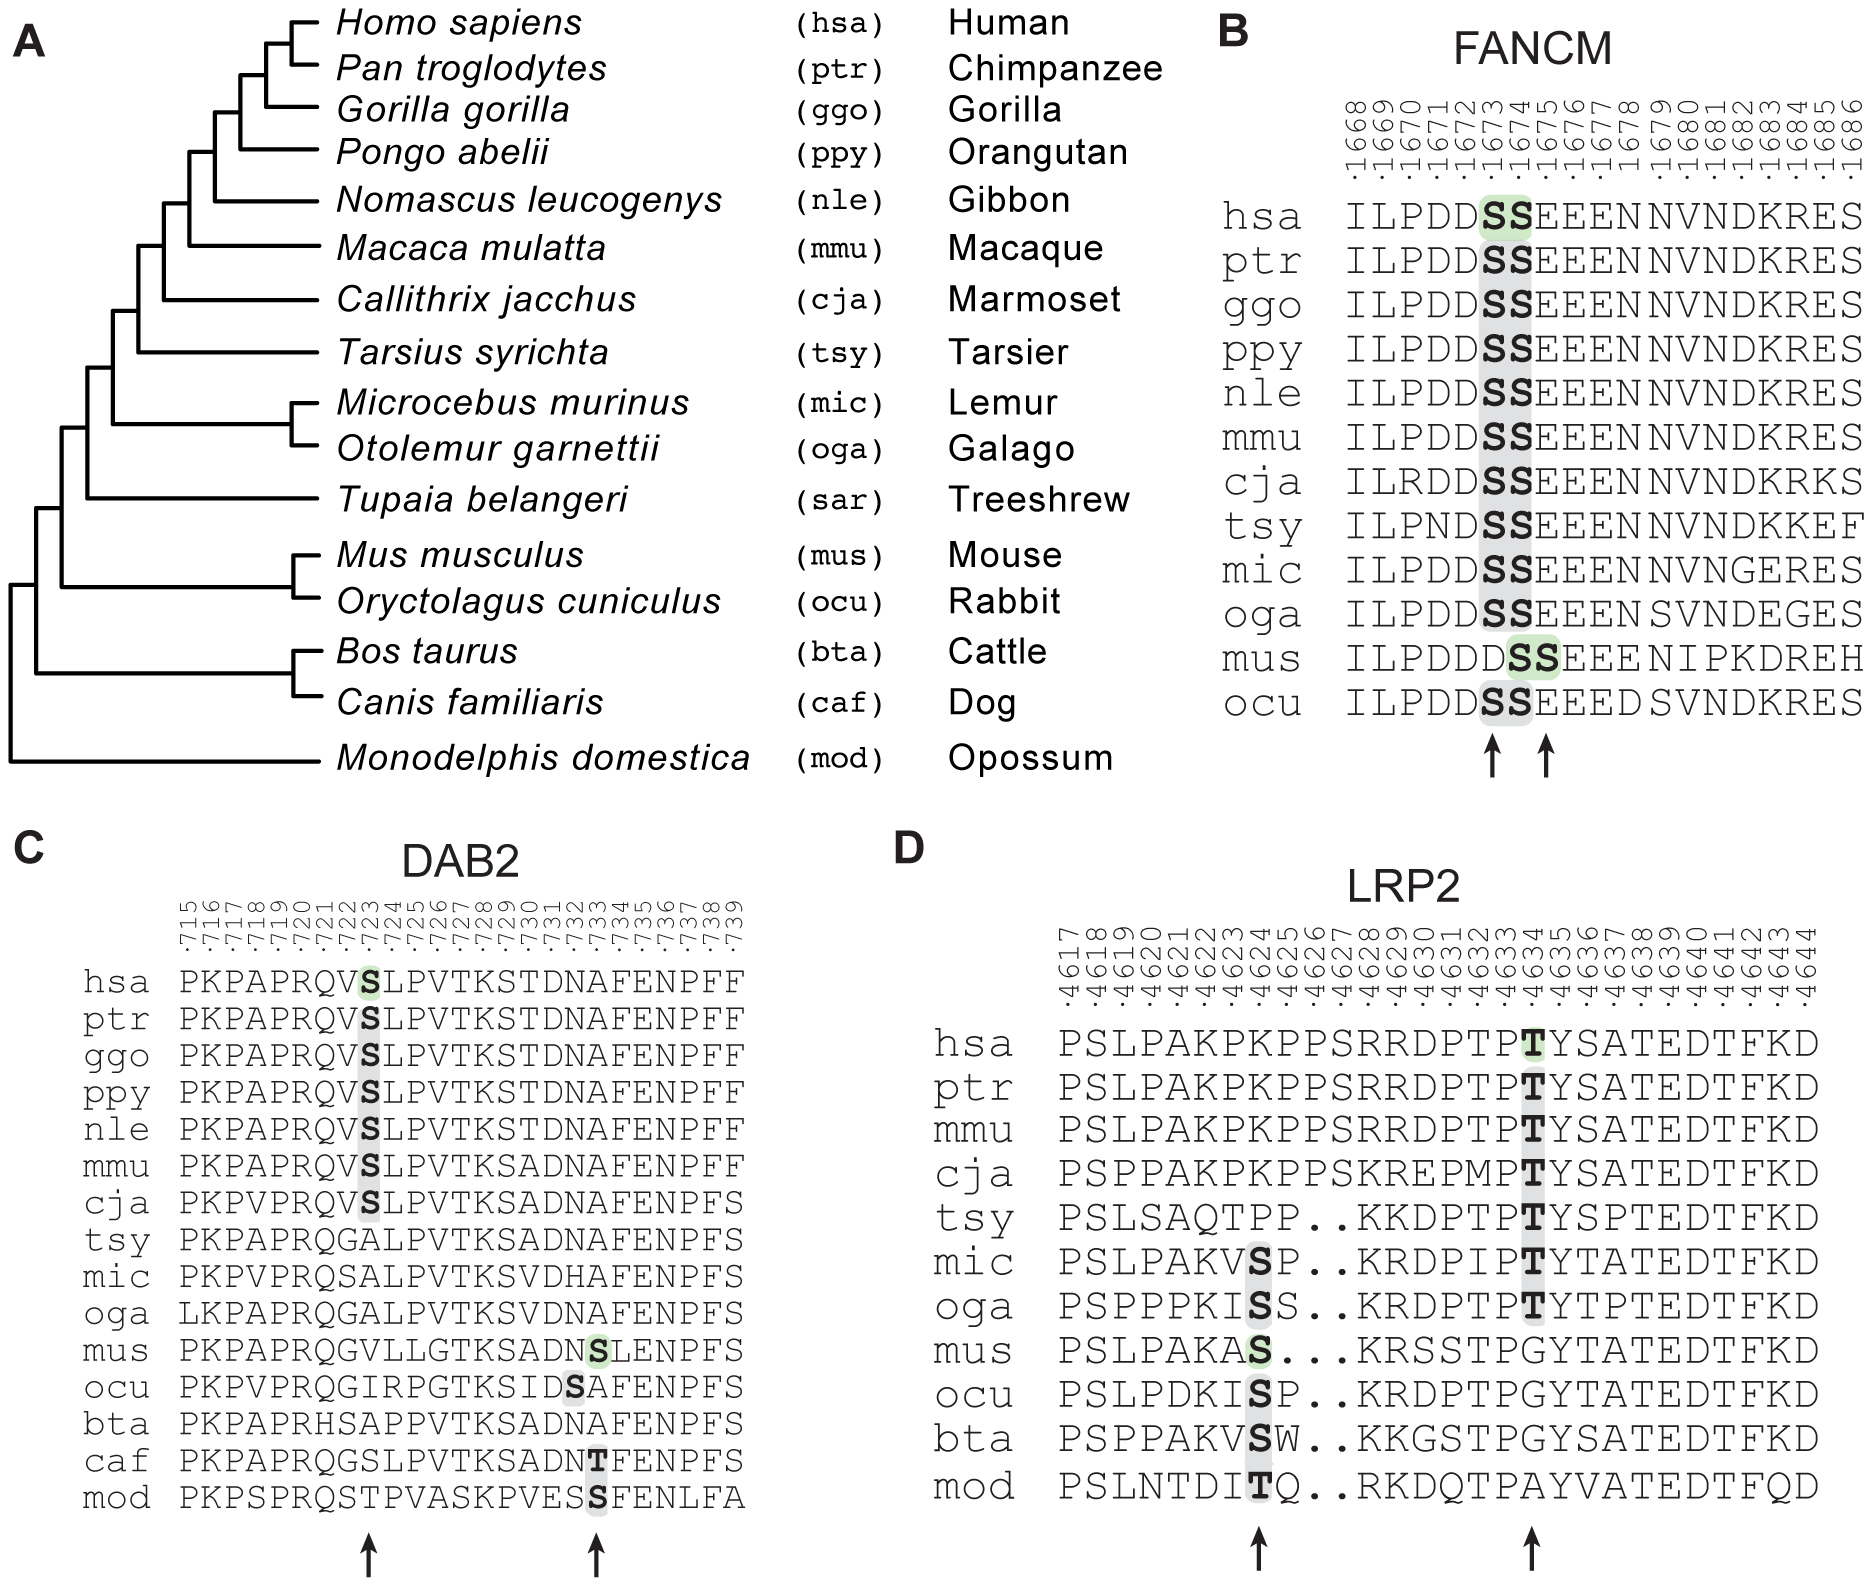 Evolutionary histories of candidate functionally redundant site pairs.